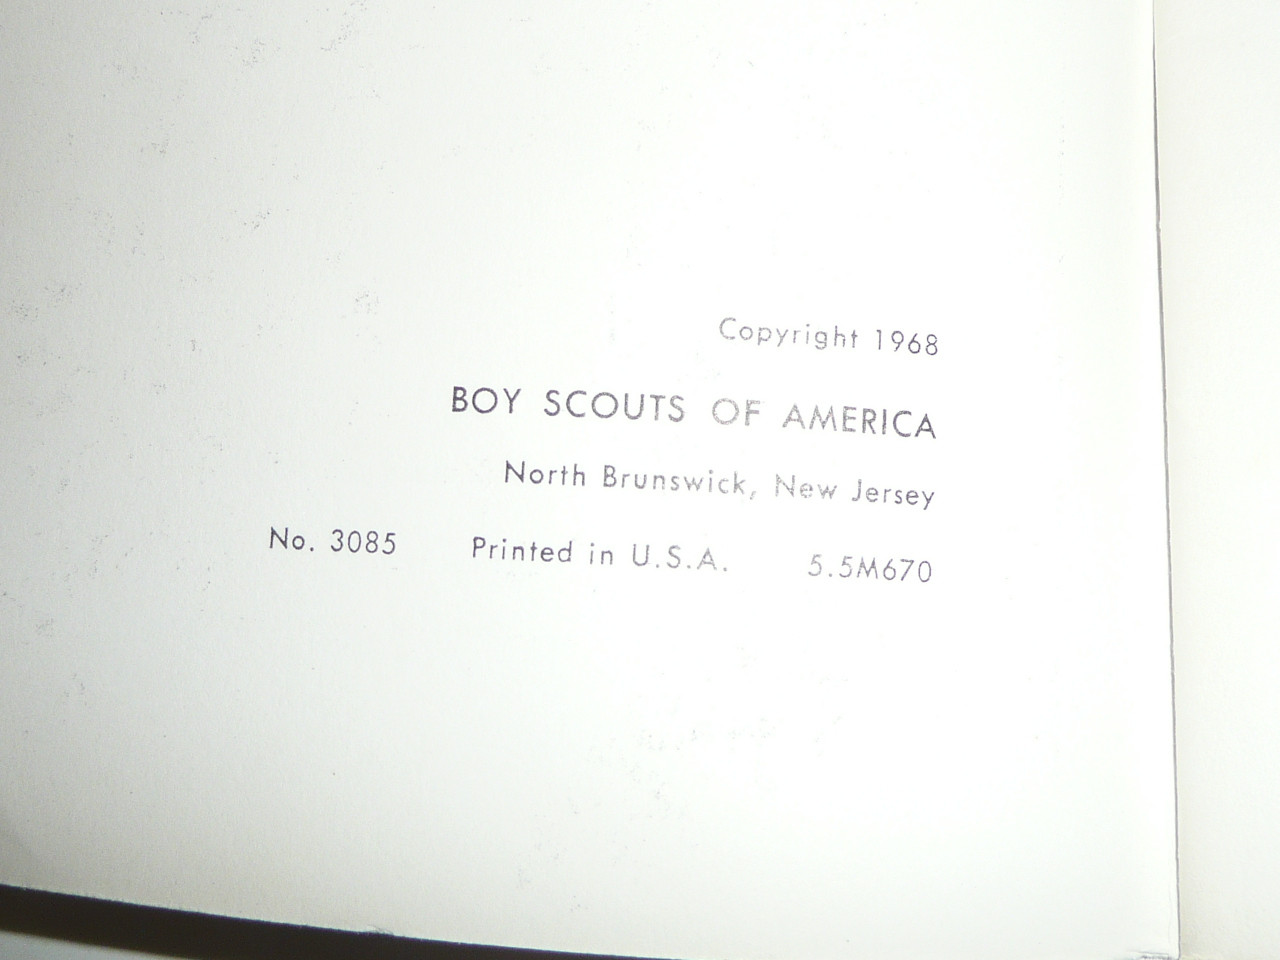 1970 School Night for Scouting Pamphlet, Boy Scouts of America, 6-70 Printing